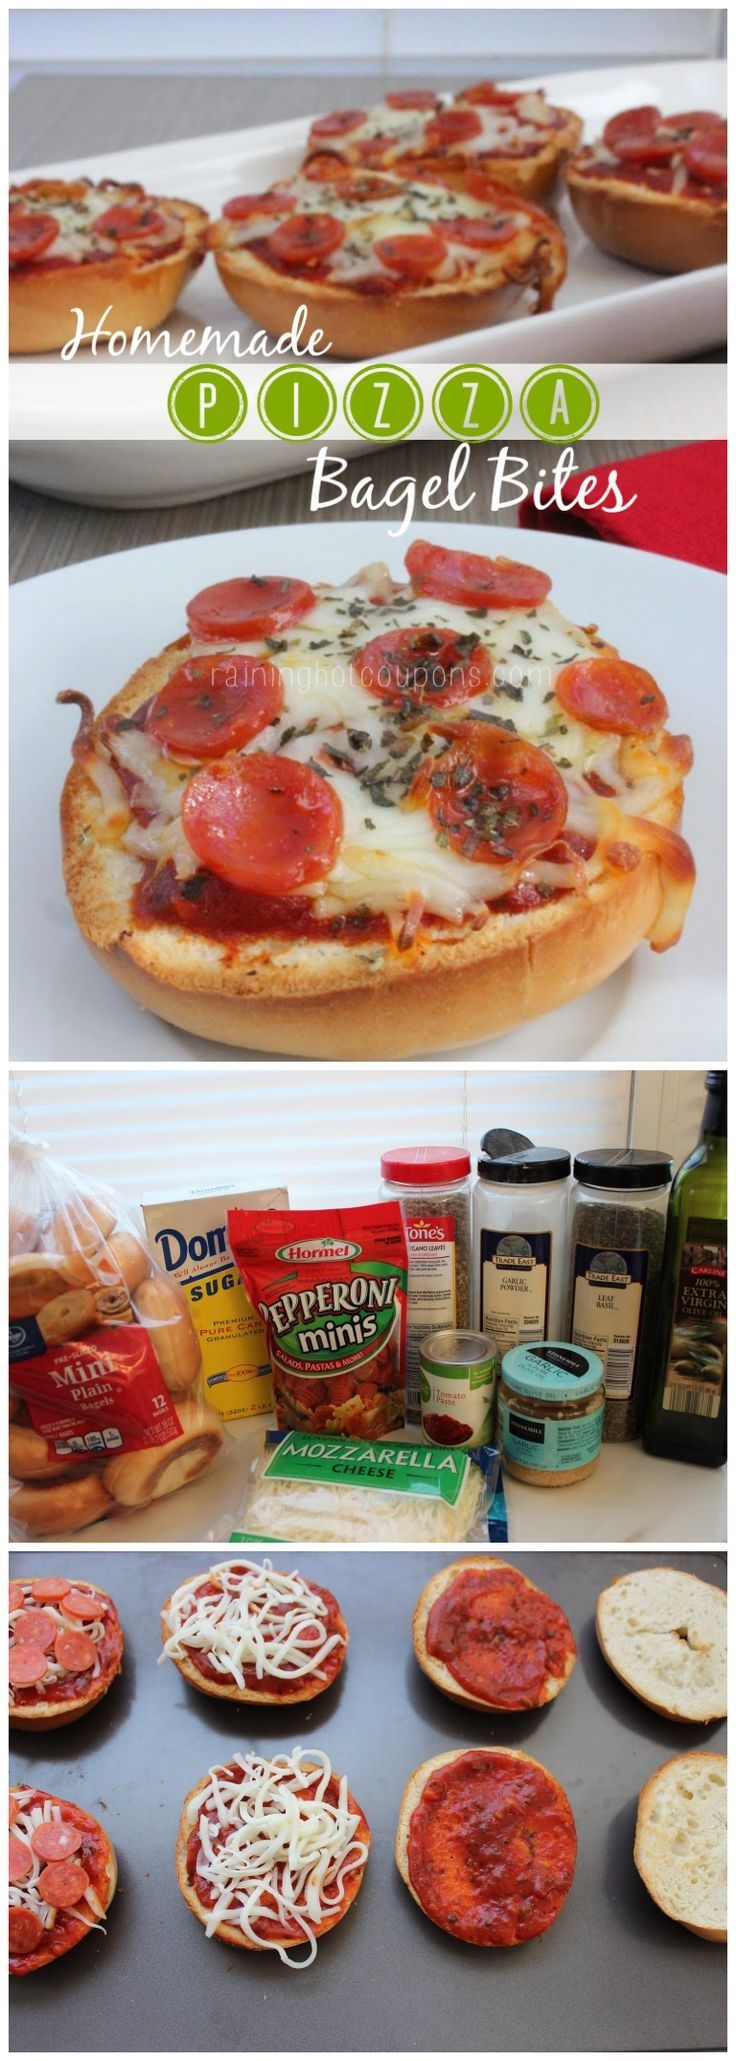 Diy pizza bites pizza baking recipe recipes ingredients instructions diy pizza bites pizza baking recipe recipes ingredients instructions easy recipes dinner recipes appetizers snacks recipe forumfinder Images